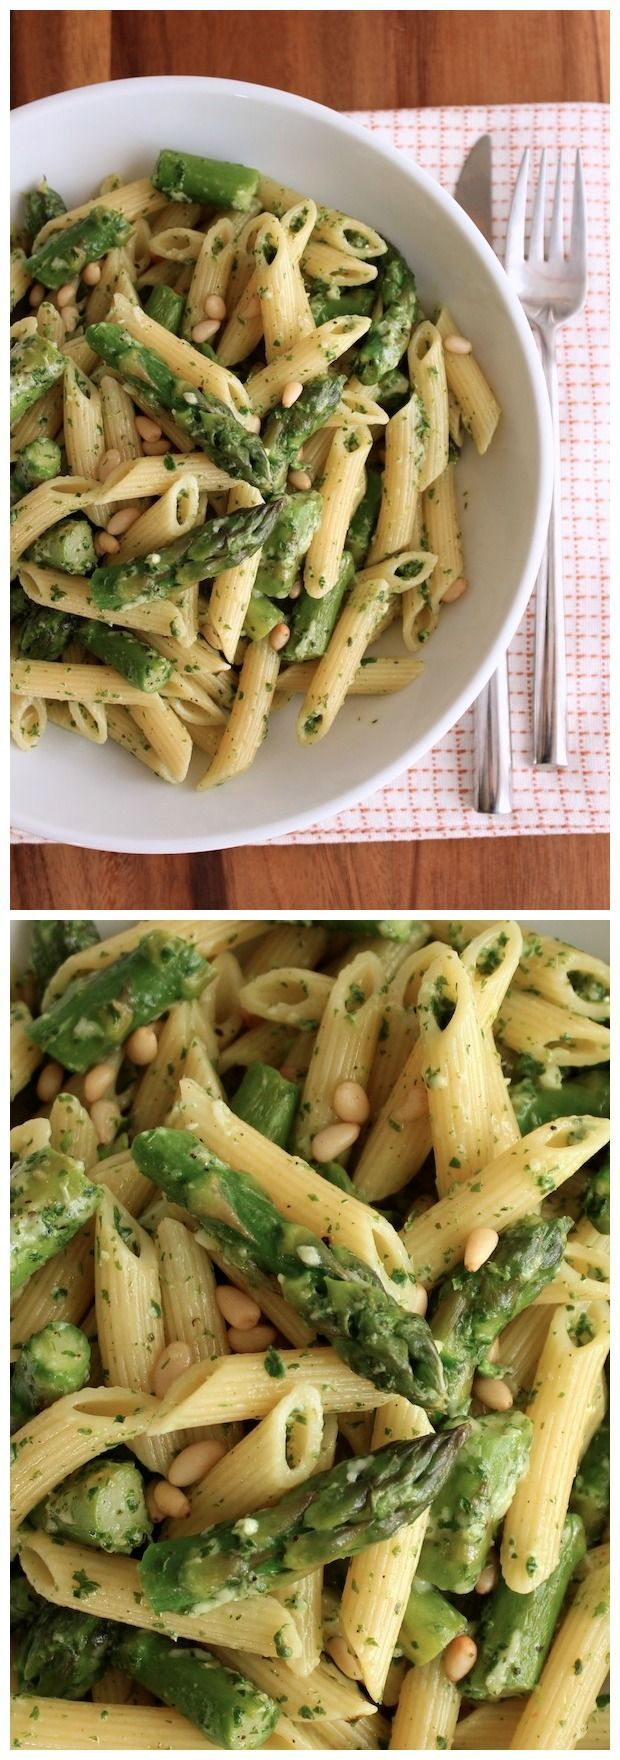 Penne with Asparagus and Lemon Pesto | Nosh-up